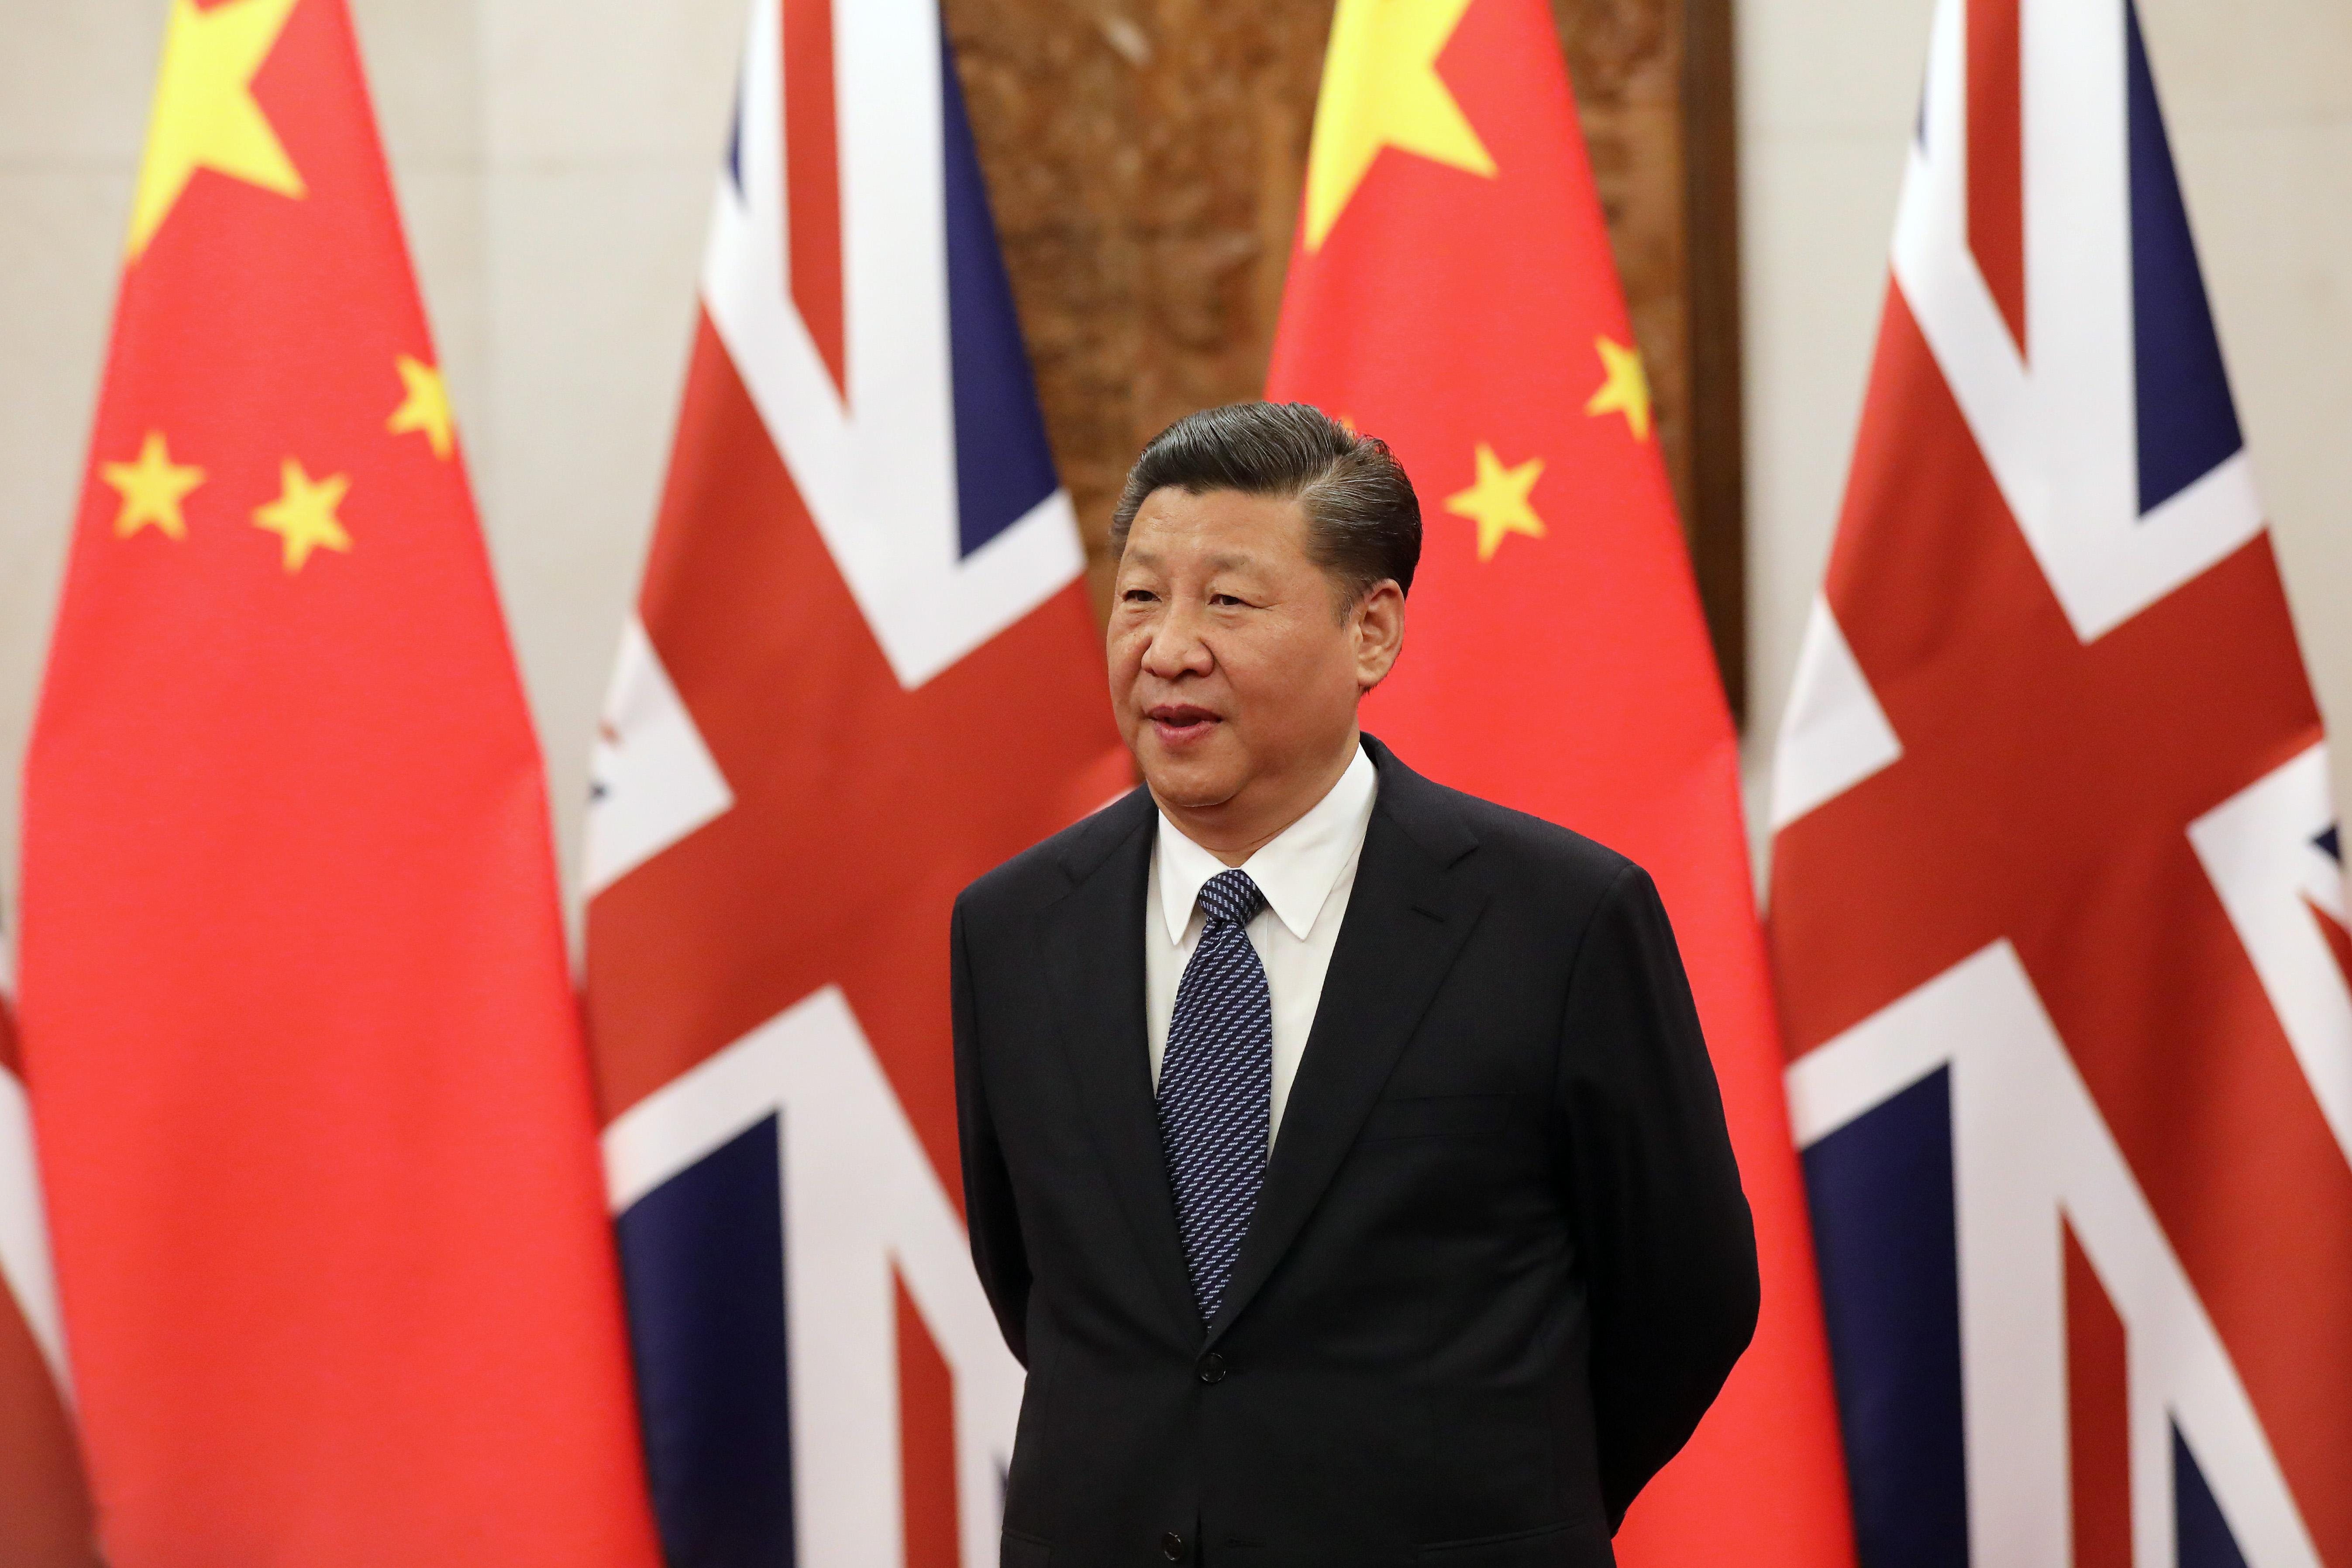 China removes online criticism of plan to extend Xi's rule